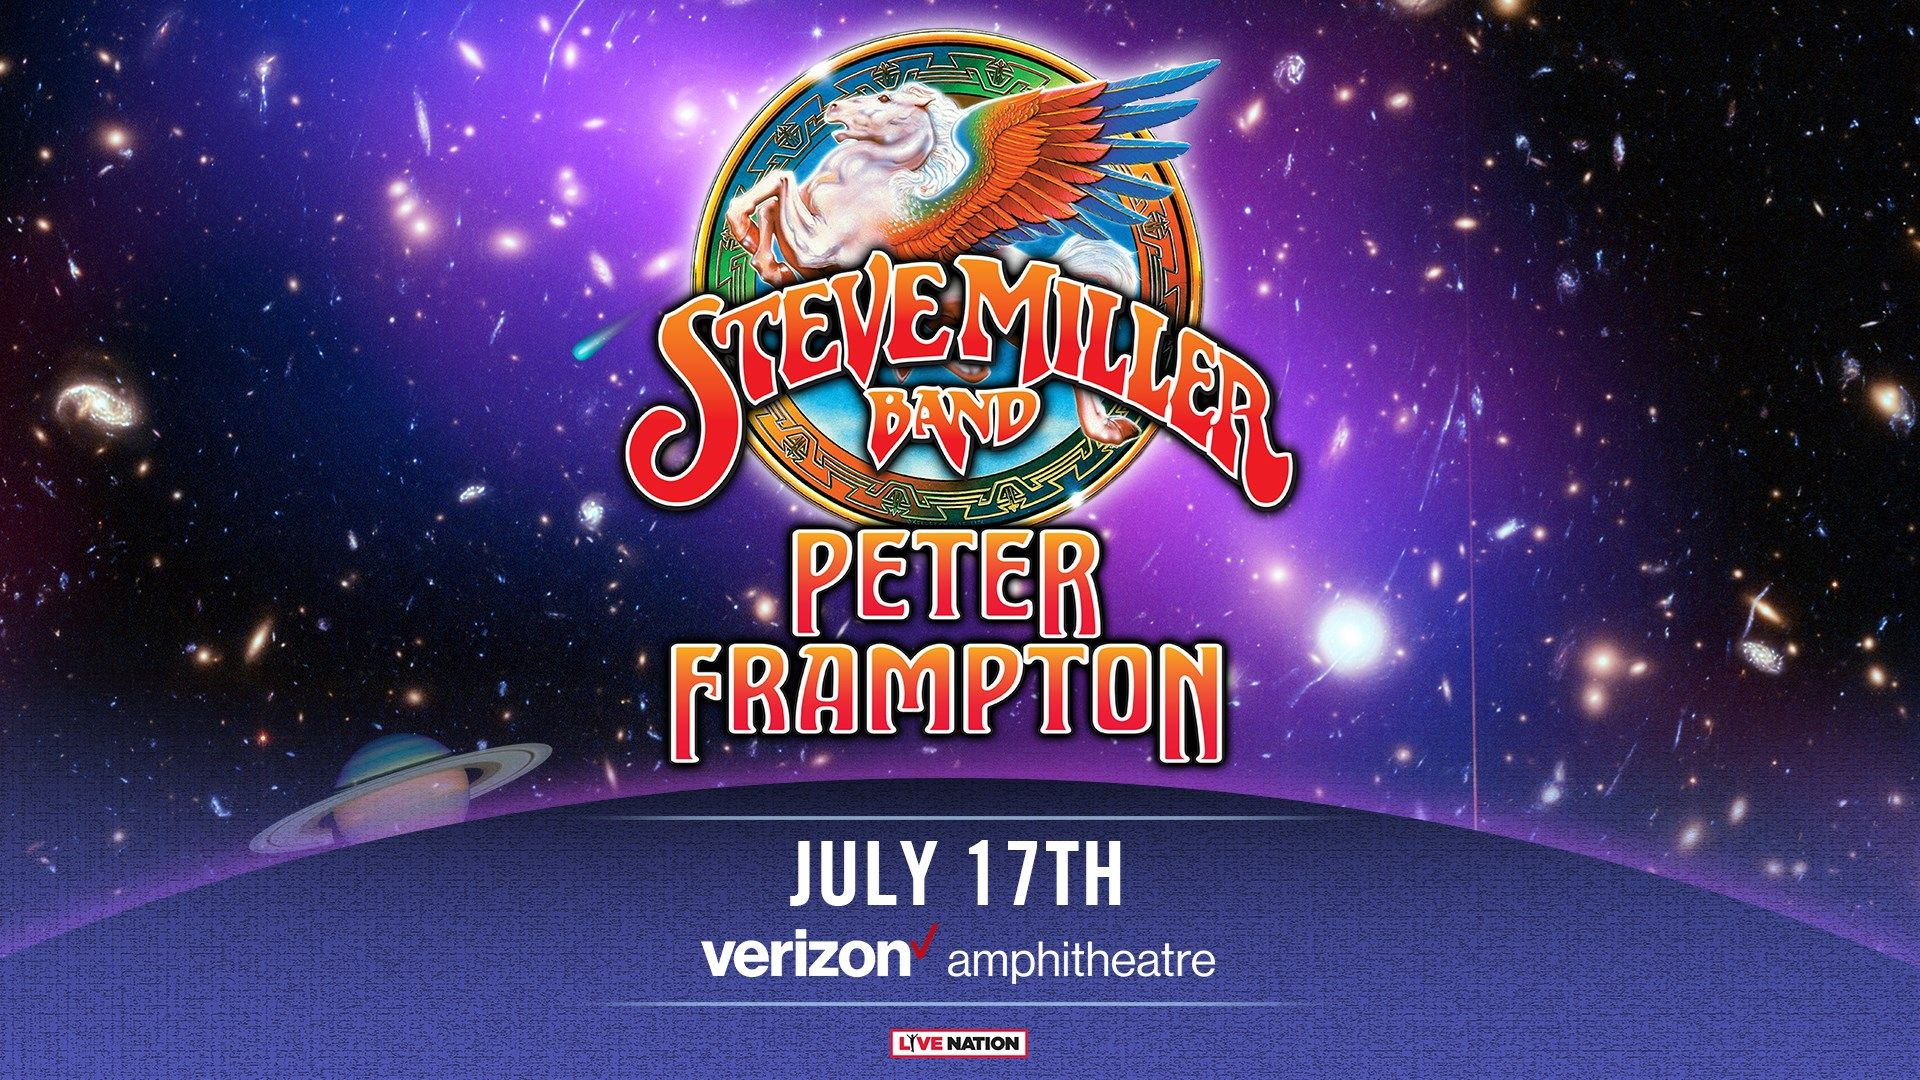 Win FOUR tickets to Steve Miller Band with Peter Frampton Want to see Steve Miller Band and Peter Frampton with three of your friends